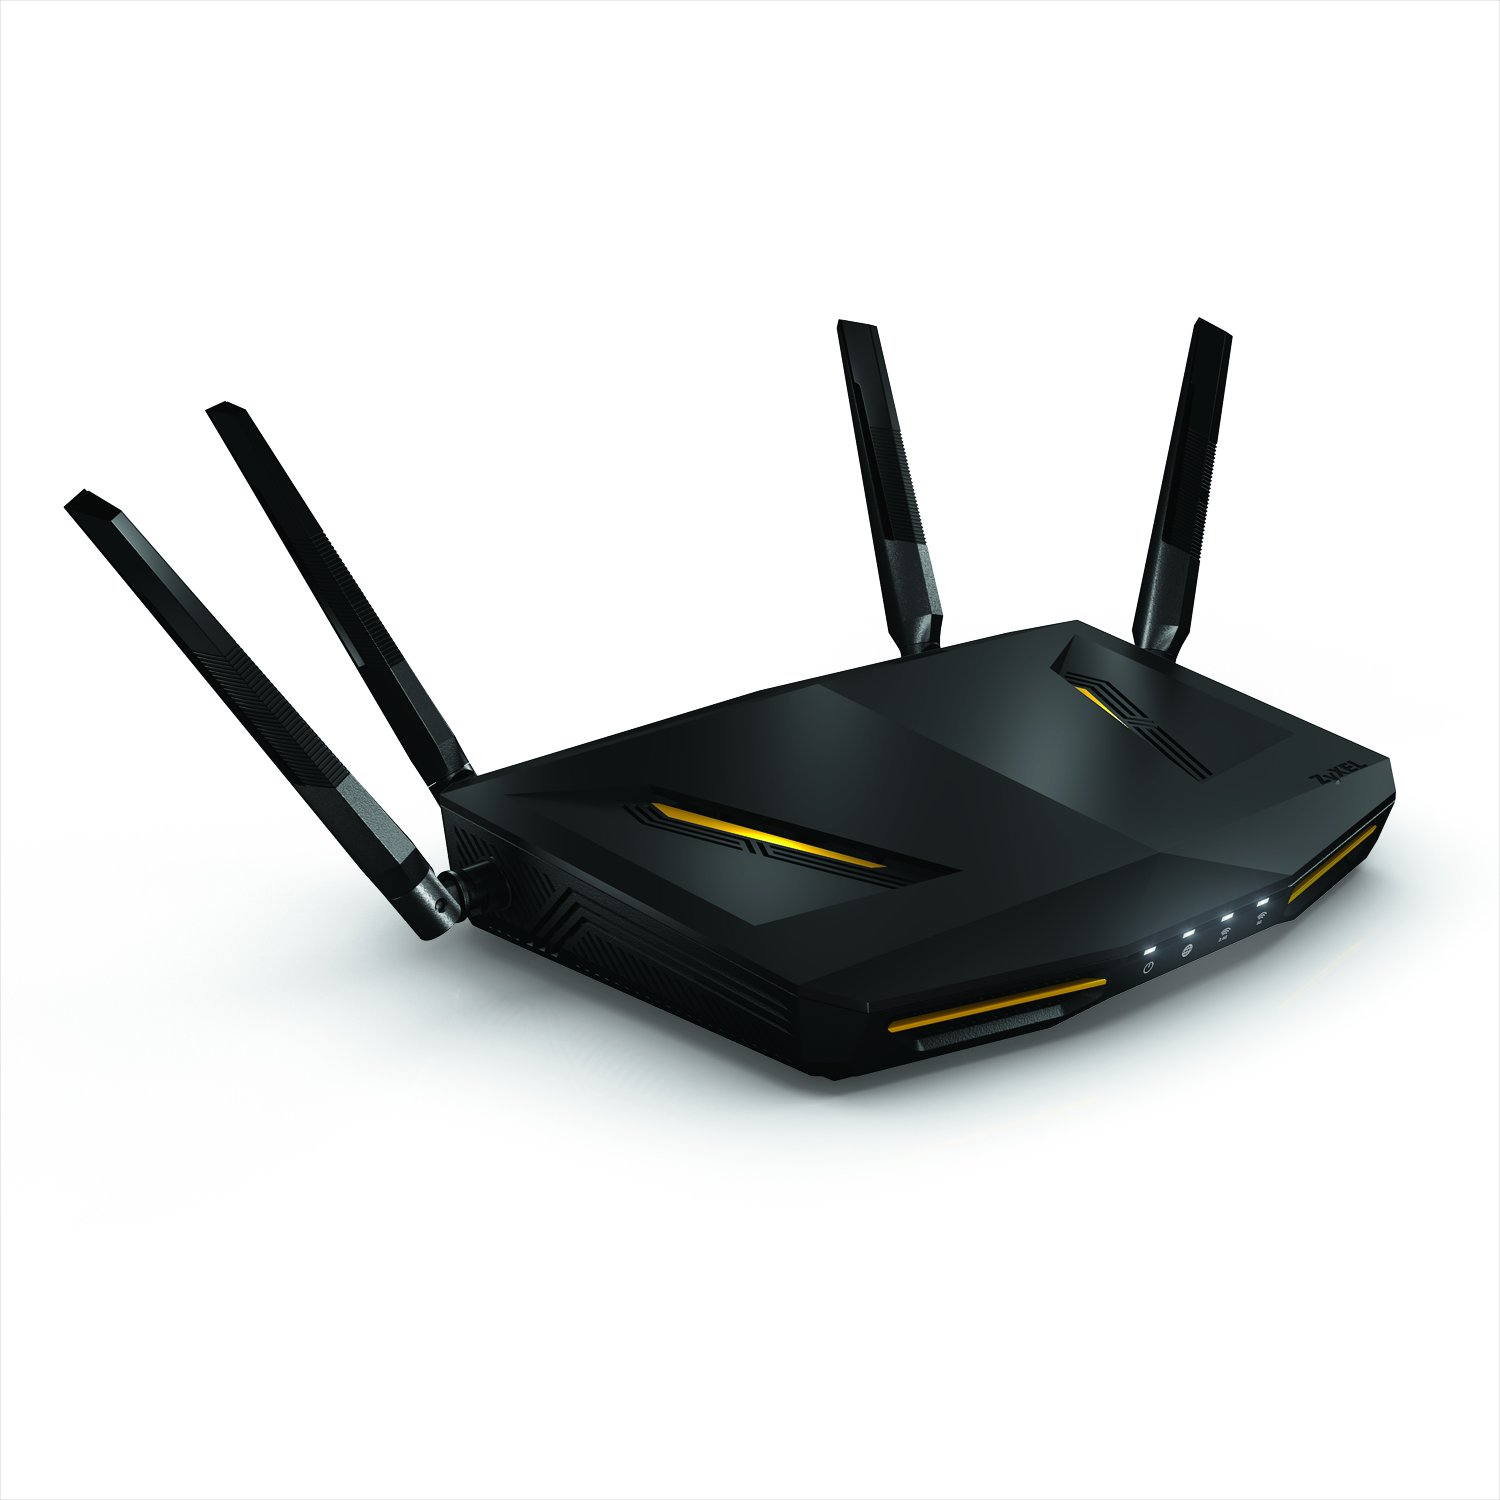 Zyxel Armor Z2 AC2600 MU-MIMO Wireless Router with StreamBoost and Beamforming Antennas [NBG6817] by ZyXEL